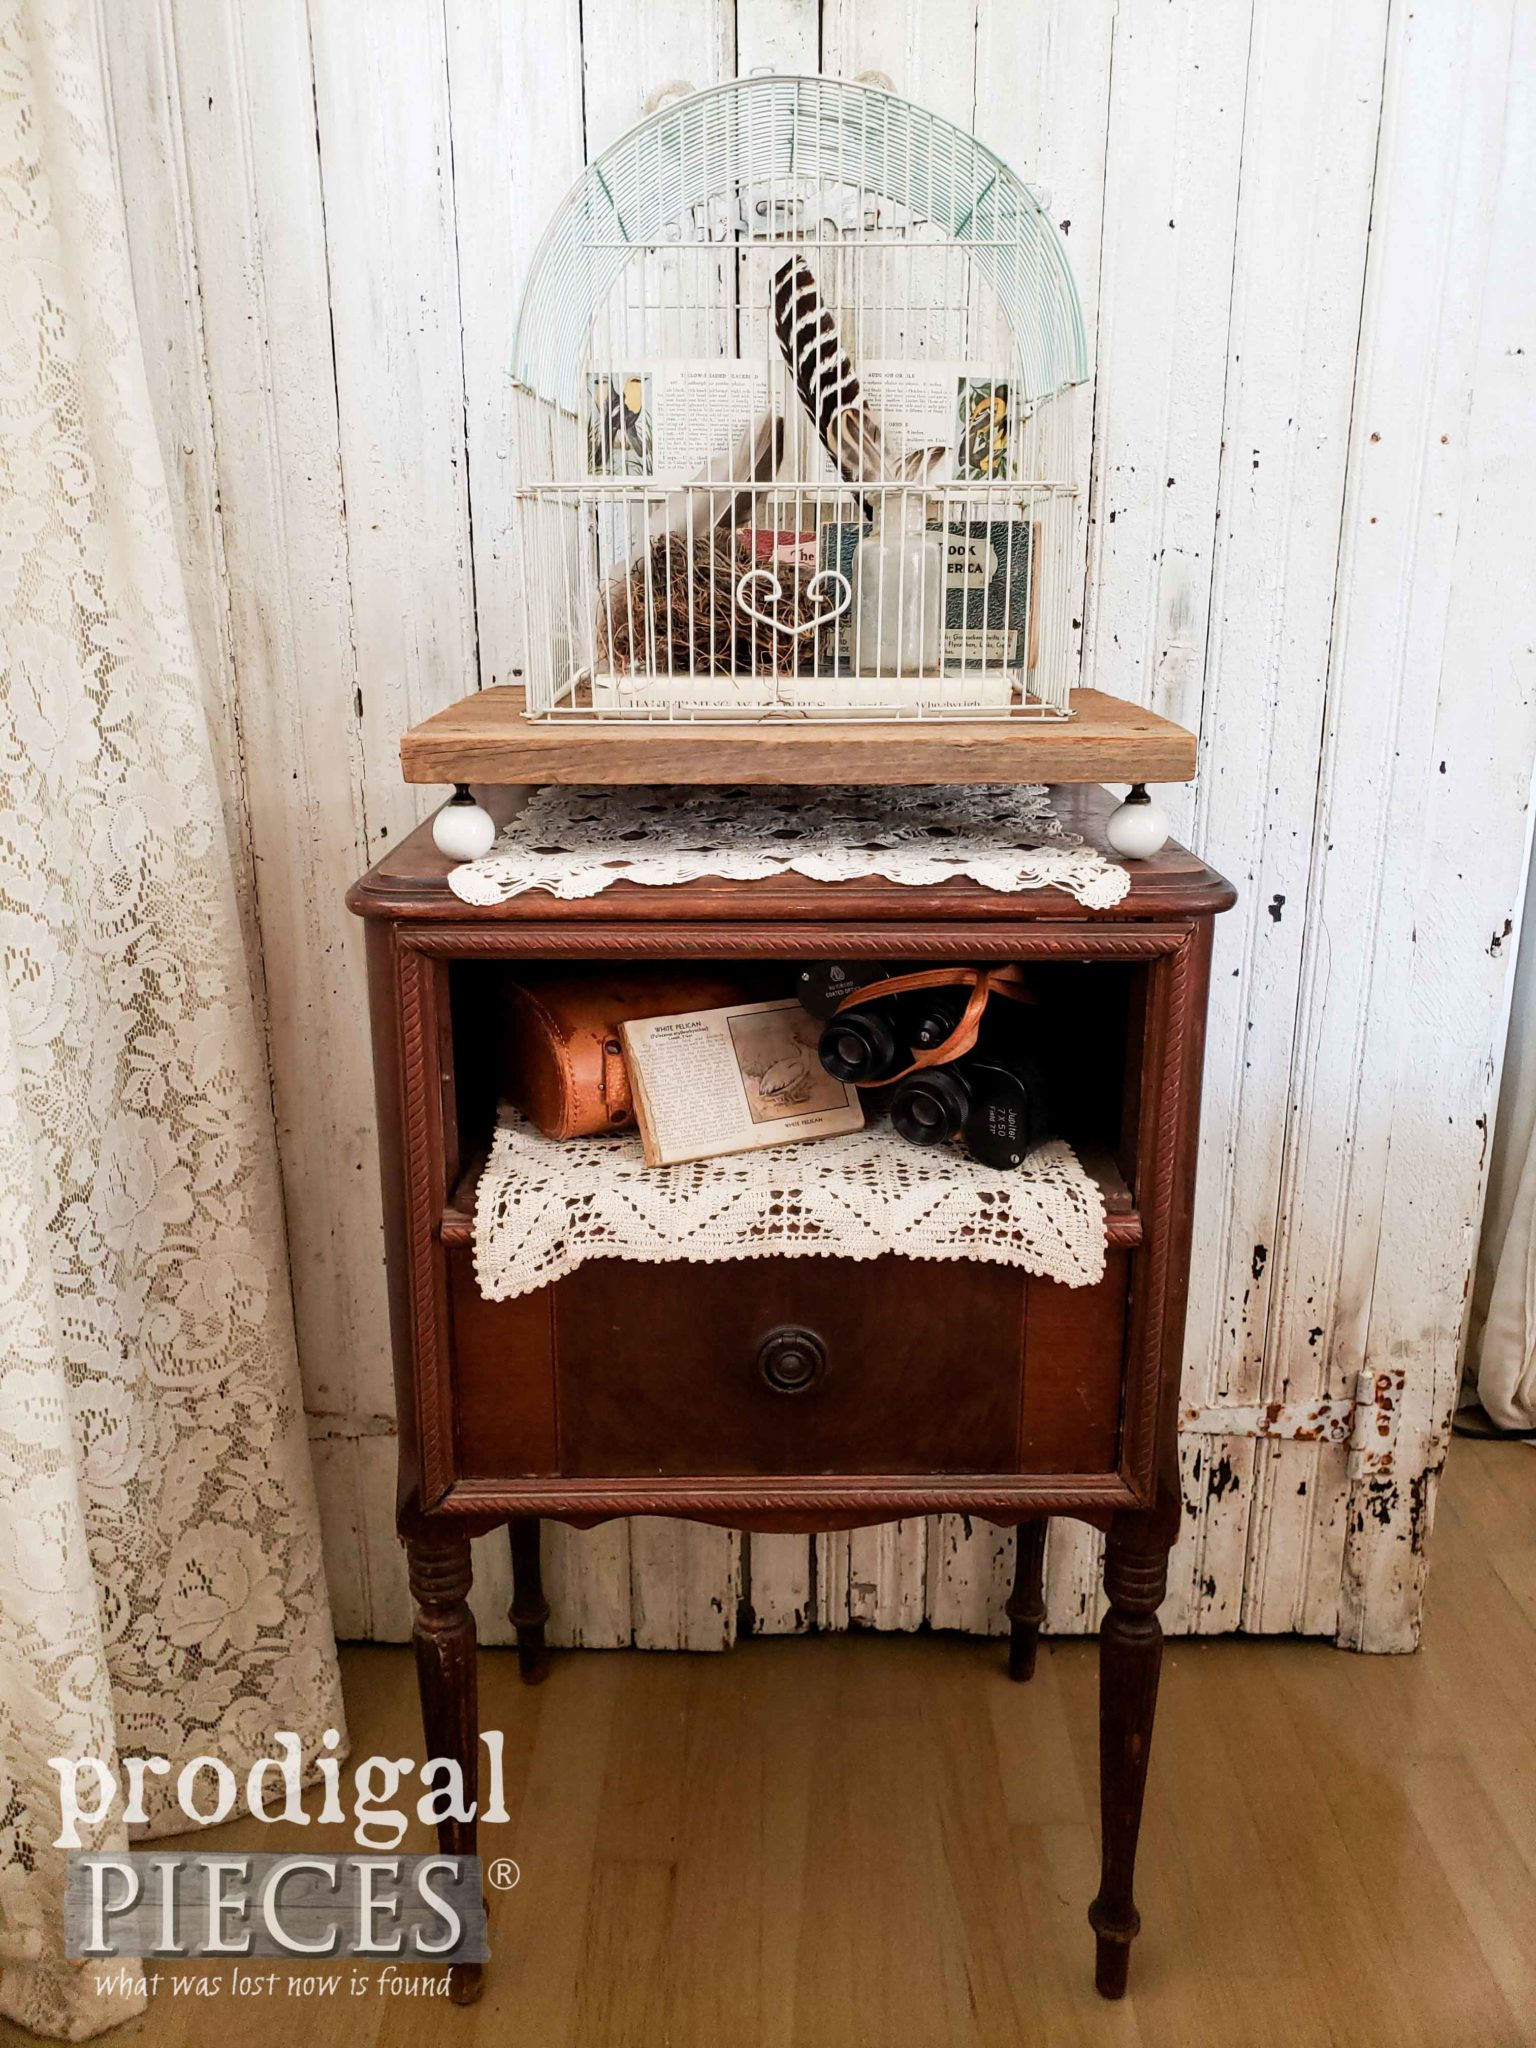 Farmhouse Style Decor with Upcycled Bird Cage Filled with Birding Memories by Larissa of Prodigal Pieces | prodigalpieces.com #prodigalpieces #diy #farmhouse #home #birds #homedecor